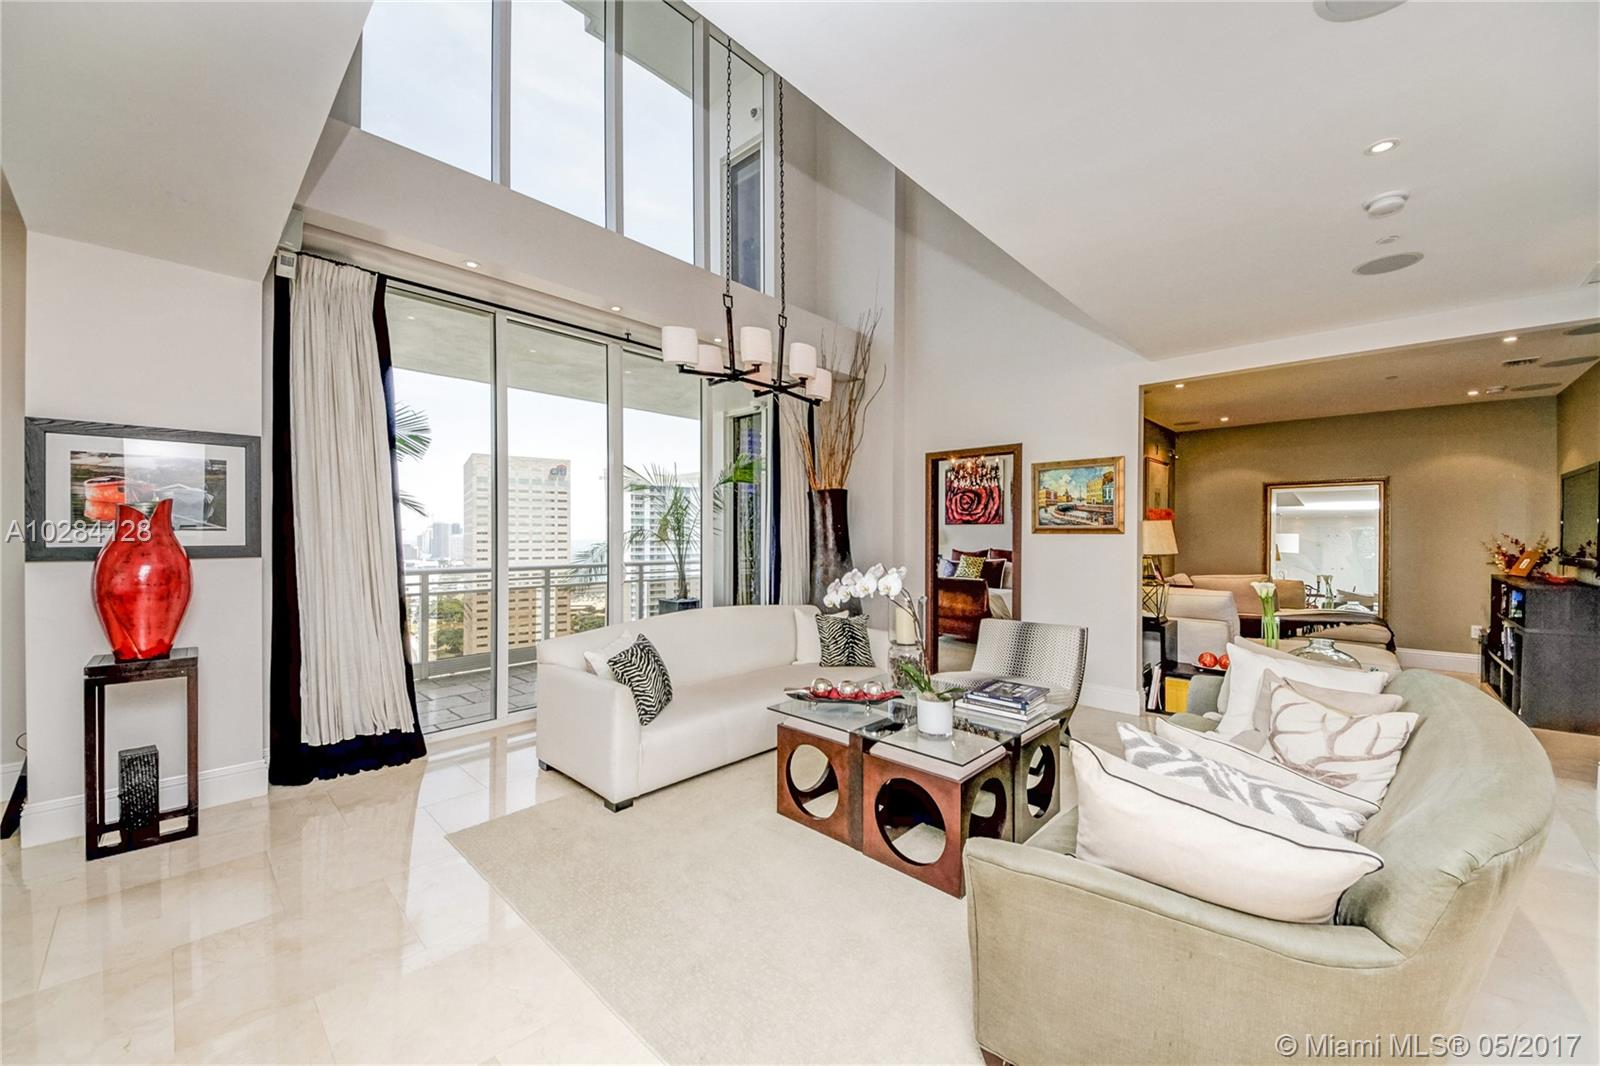 901 Brickell key blvd-PH3705 miami--fl-33131-a10284128-Pic15